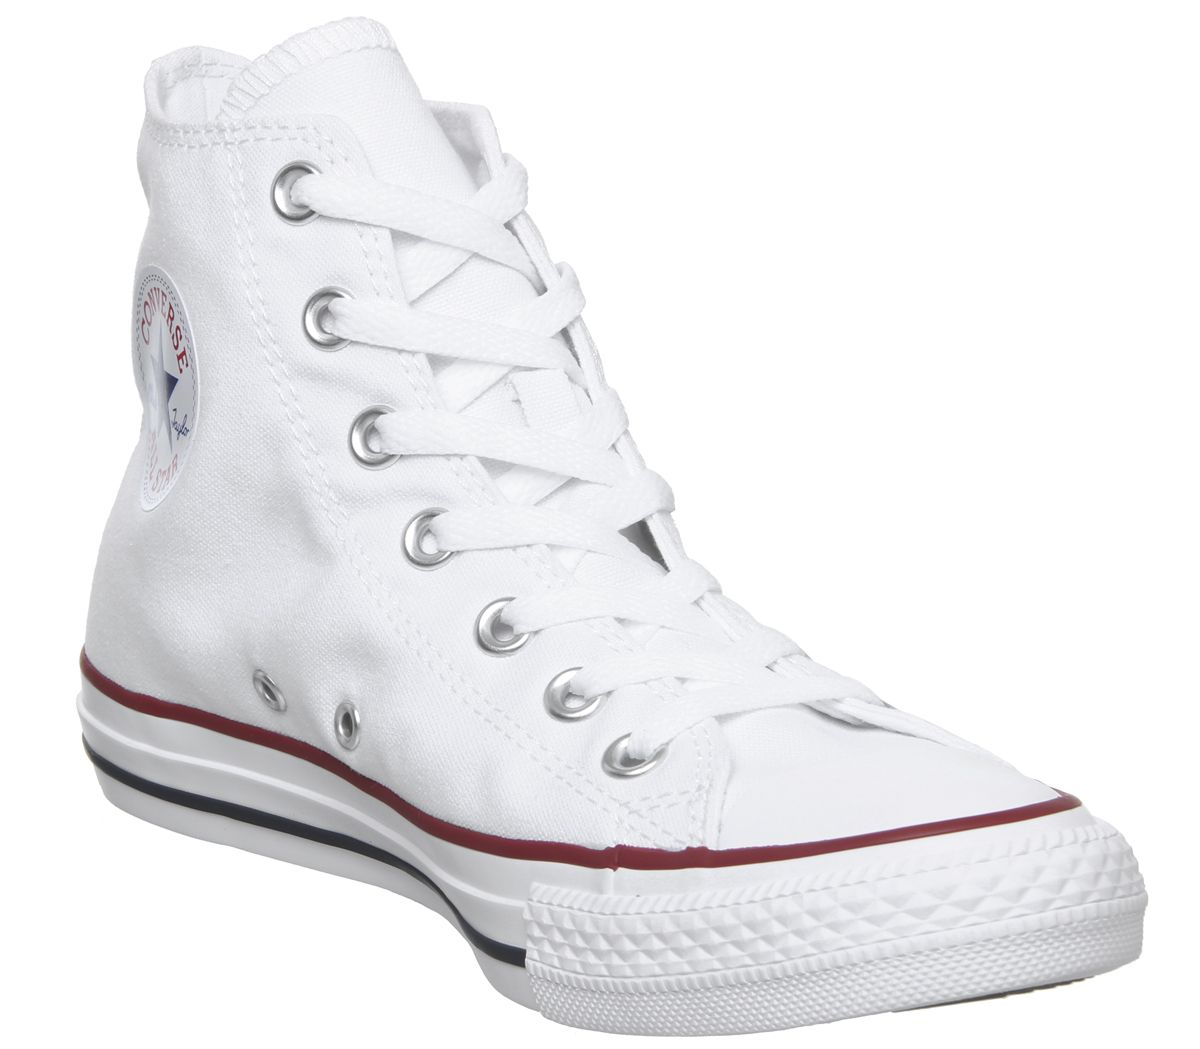 8f22dd08637a Converse All Star hi optical white canvas